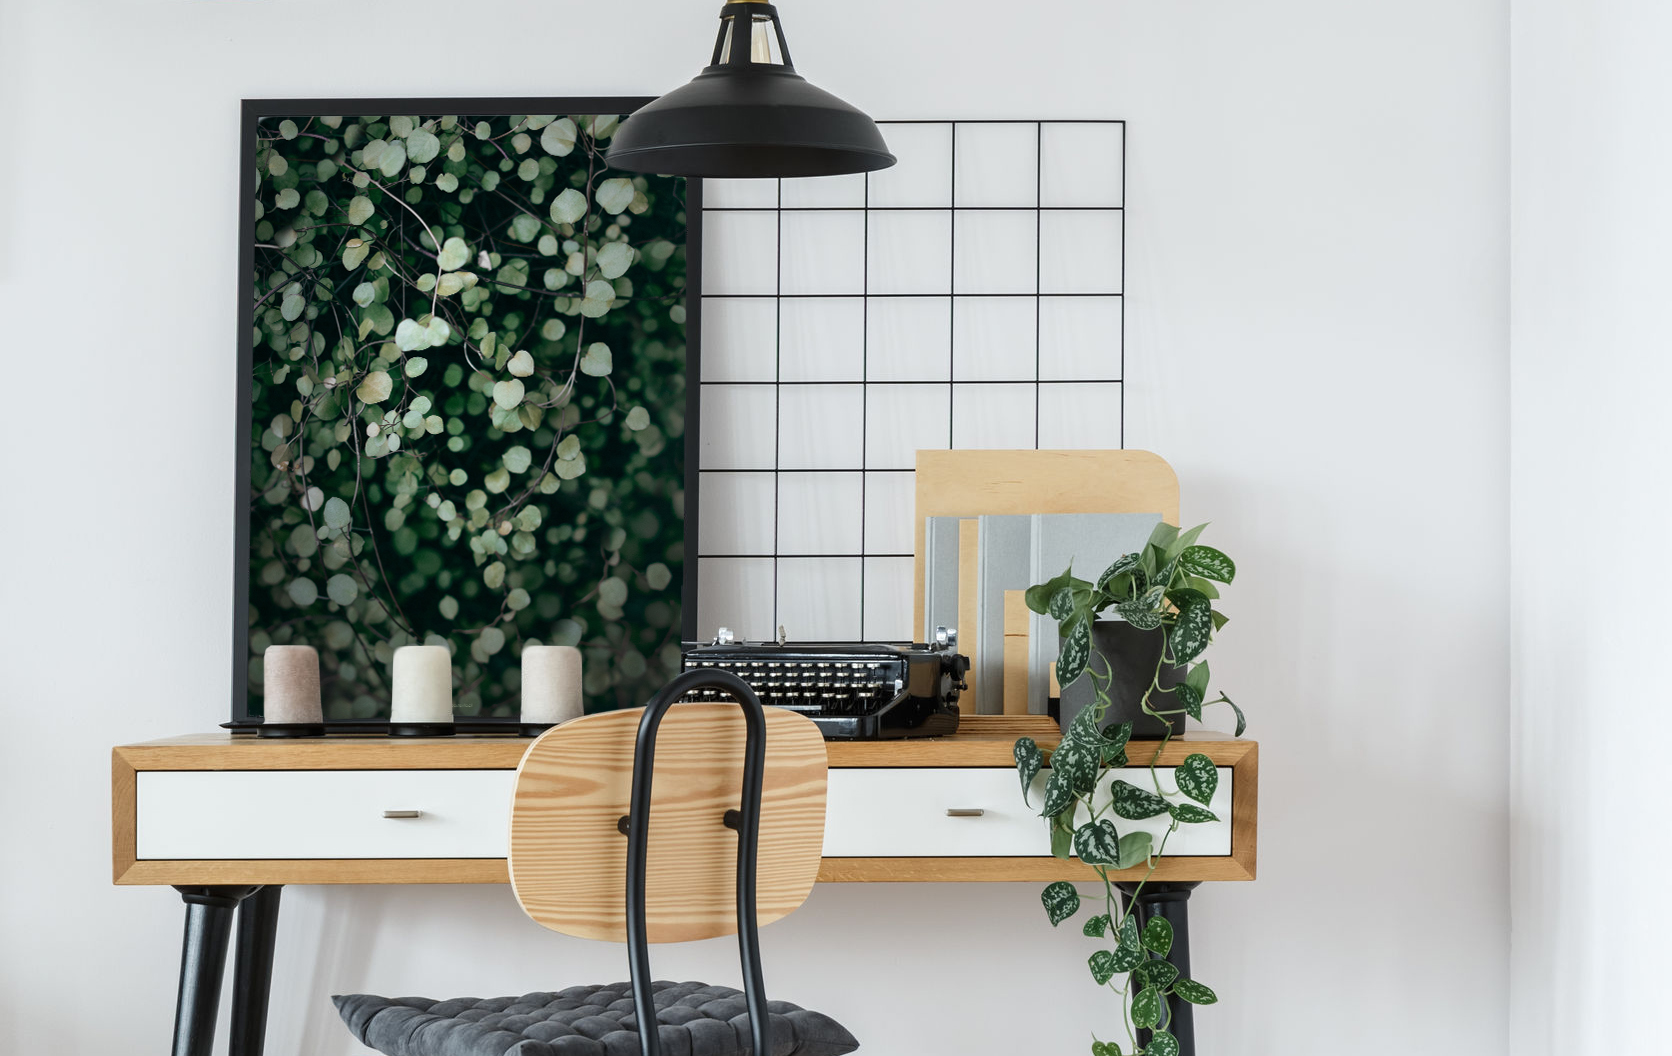 93191281 - modern retro style desk and chair in cozy white home office interior with vintage typewriter, plant and poster